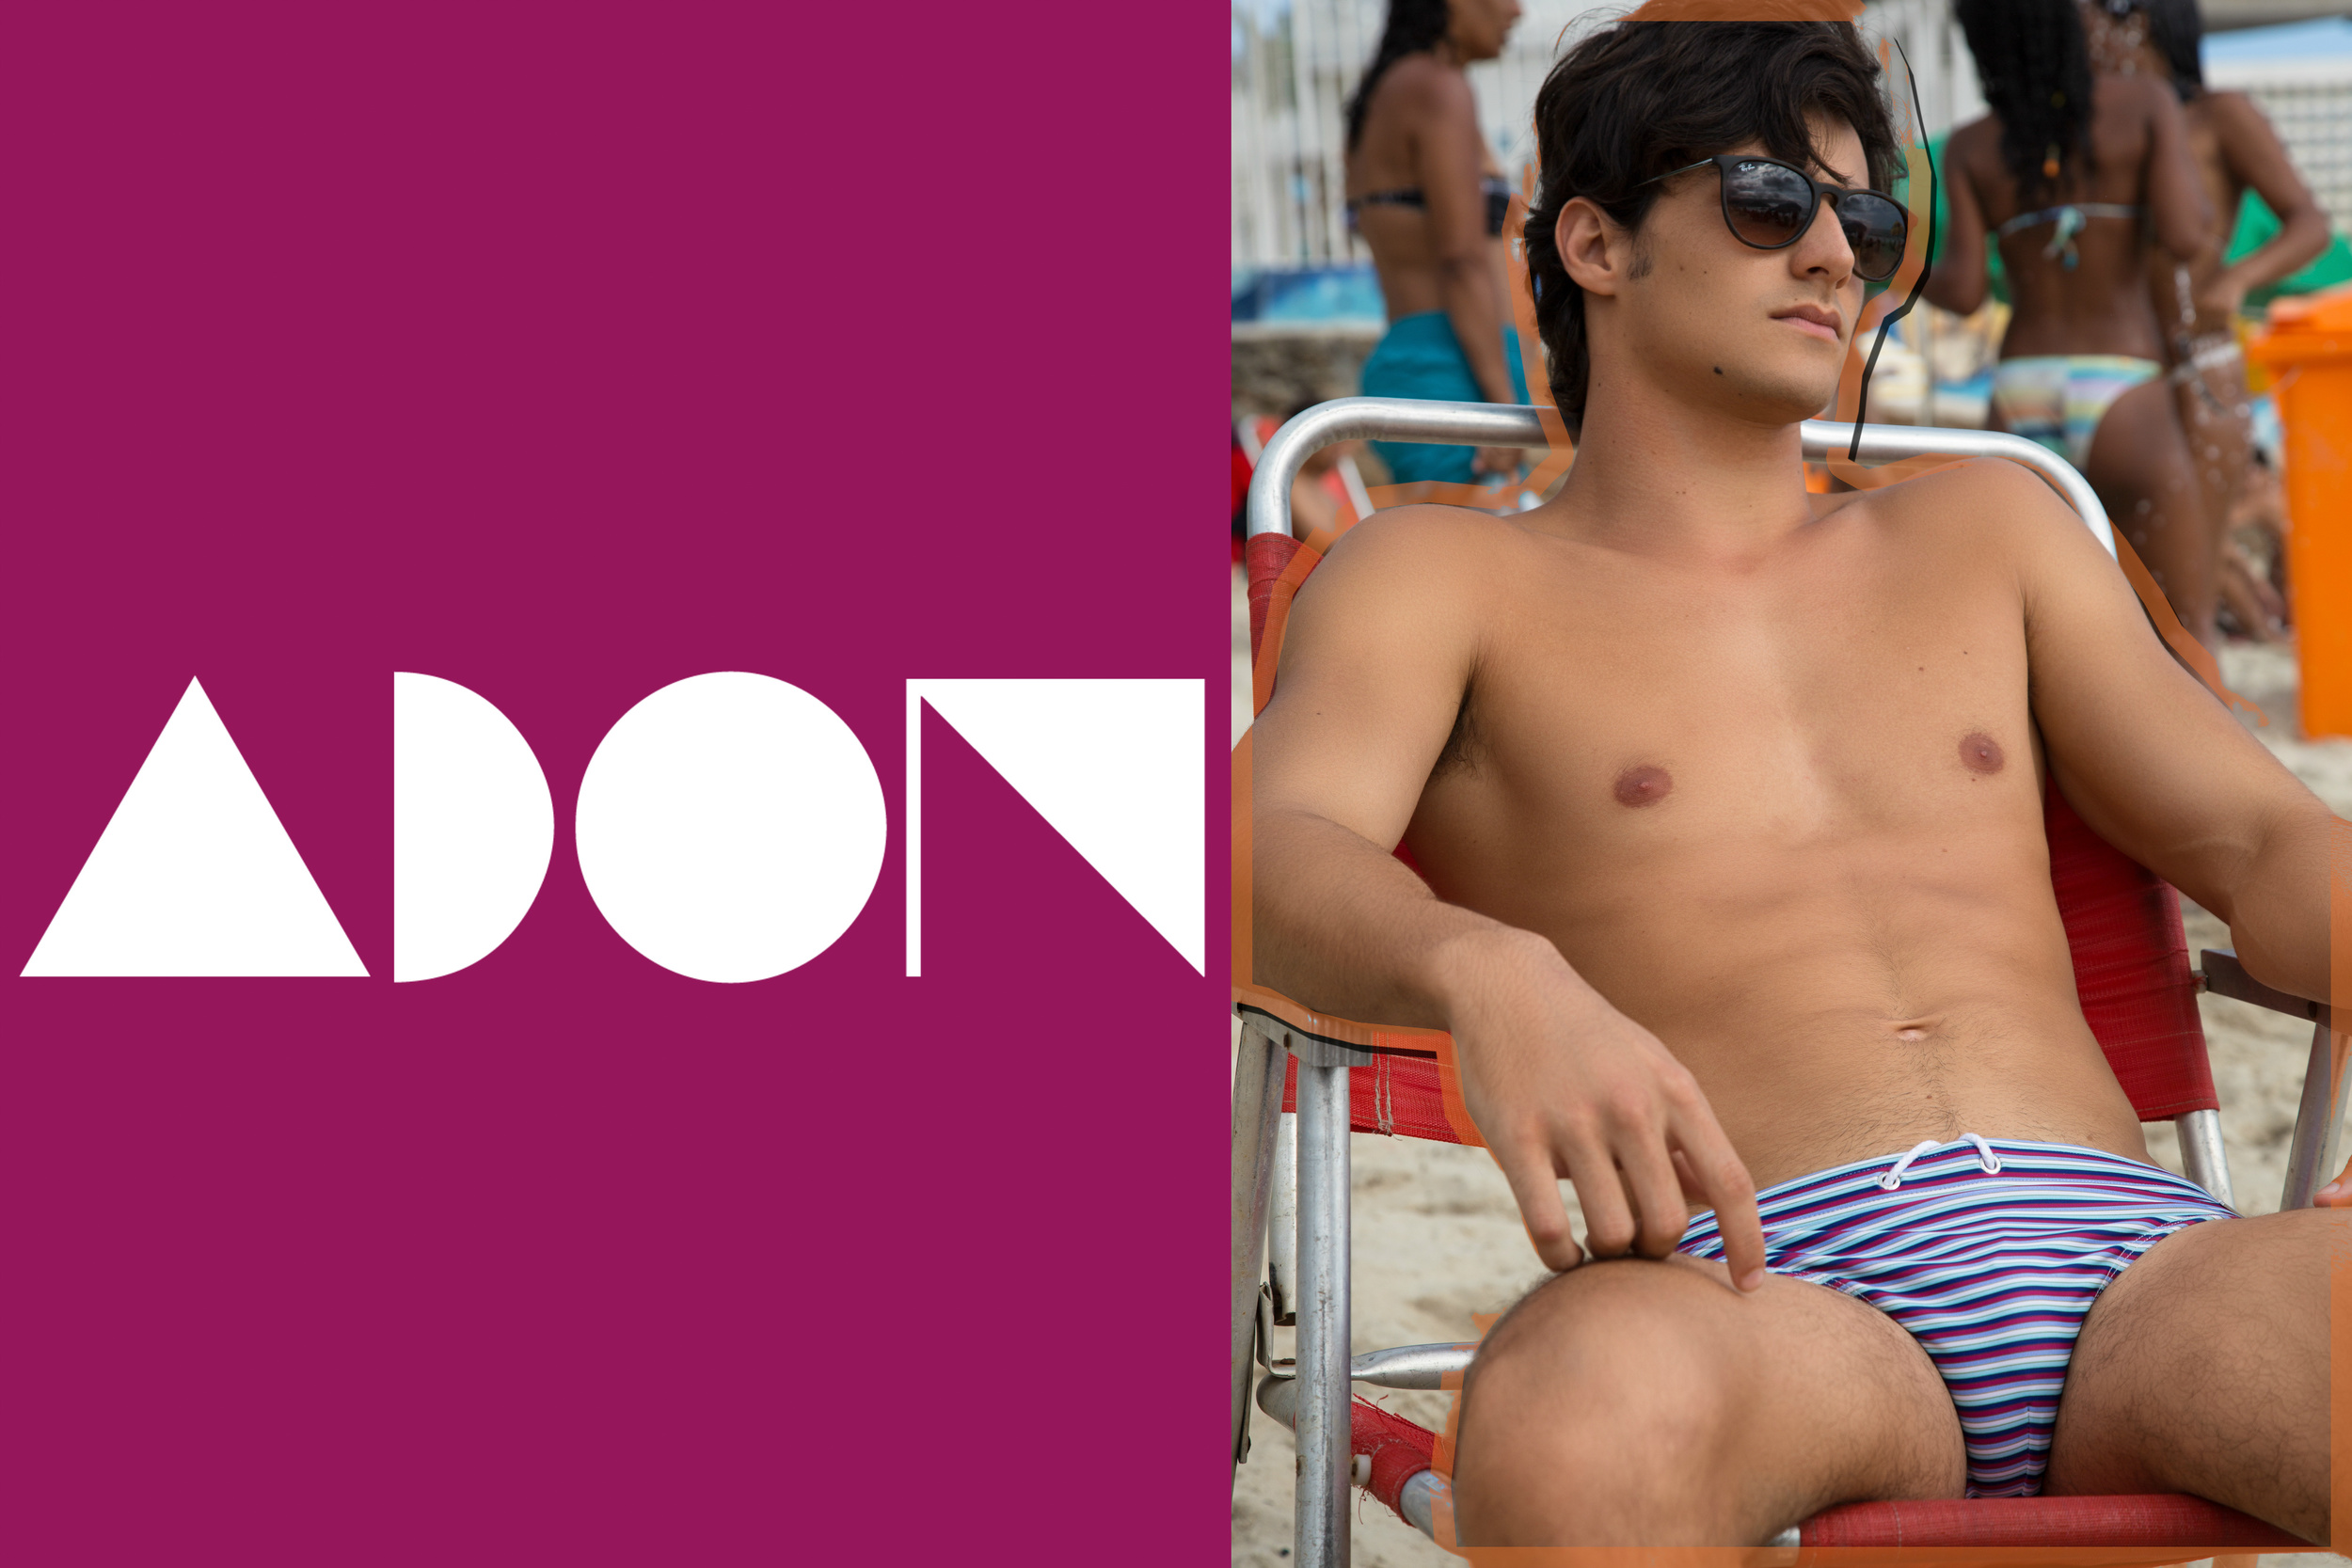 Swimsuit: Parke And Ronen Sunglasses: Ray-Ban